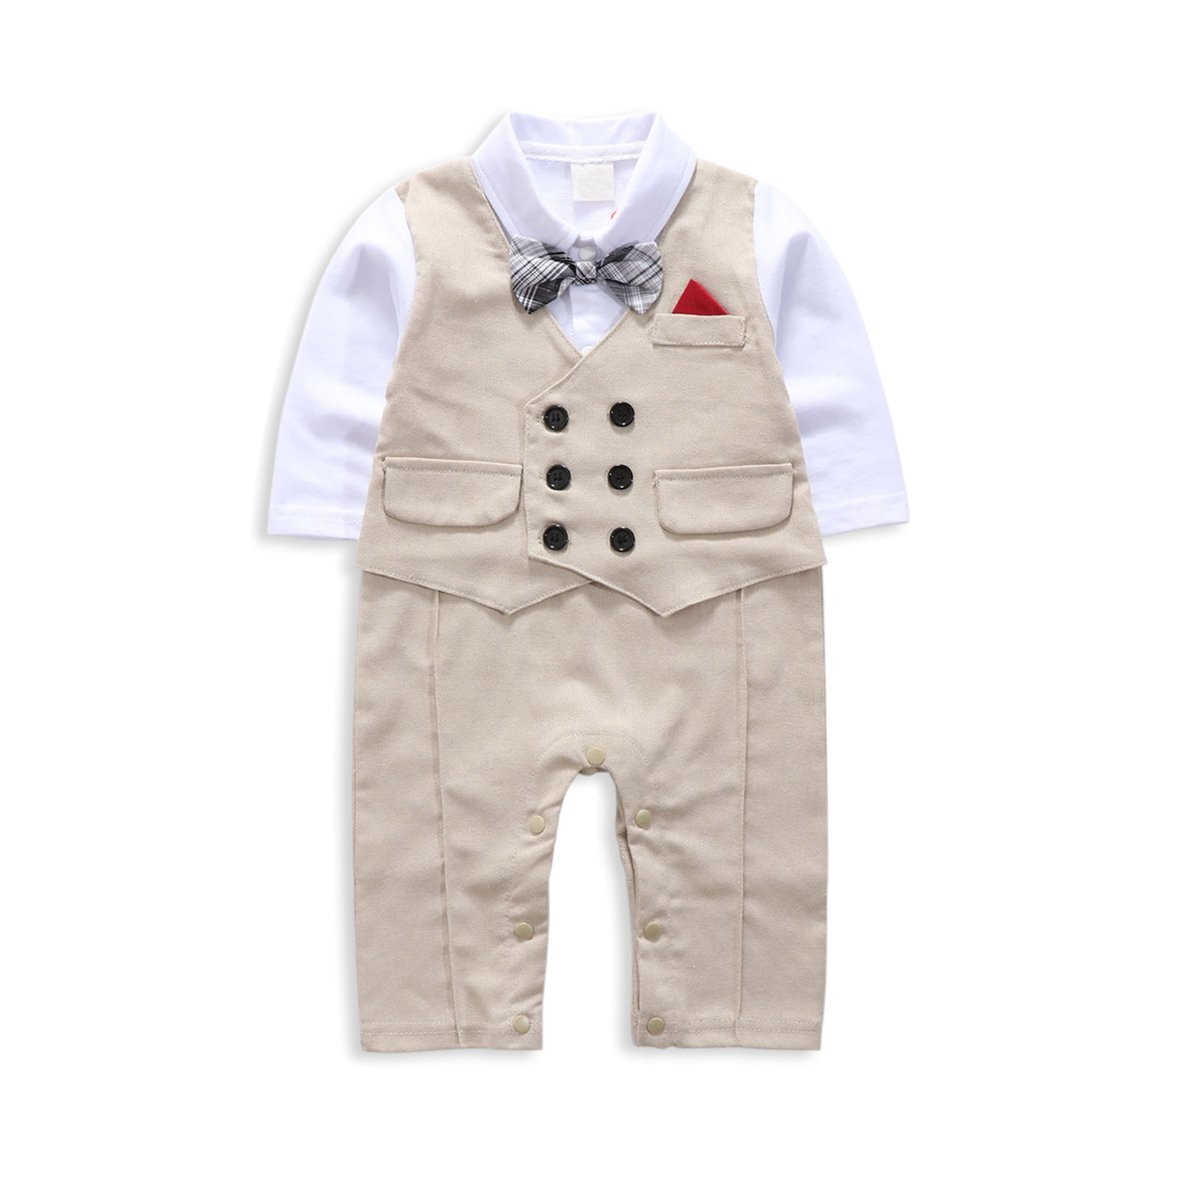 Toddler Short Sleeve Rompers Infant Outfit Onesie with Bow tie TNYKER Baby Boy Suit